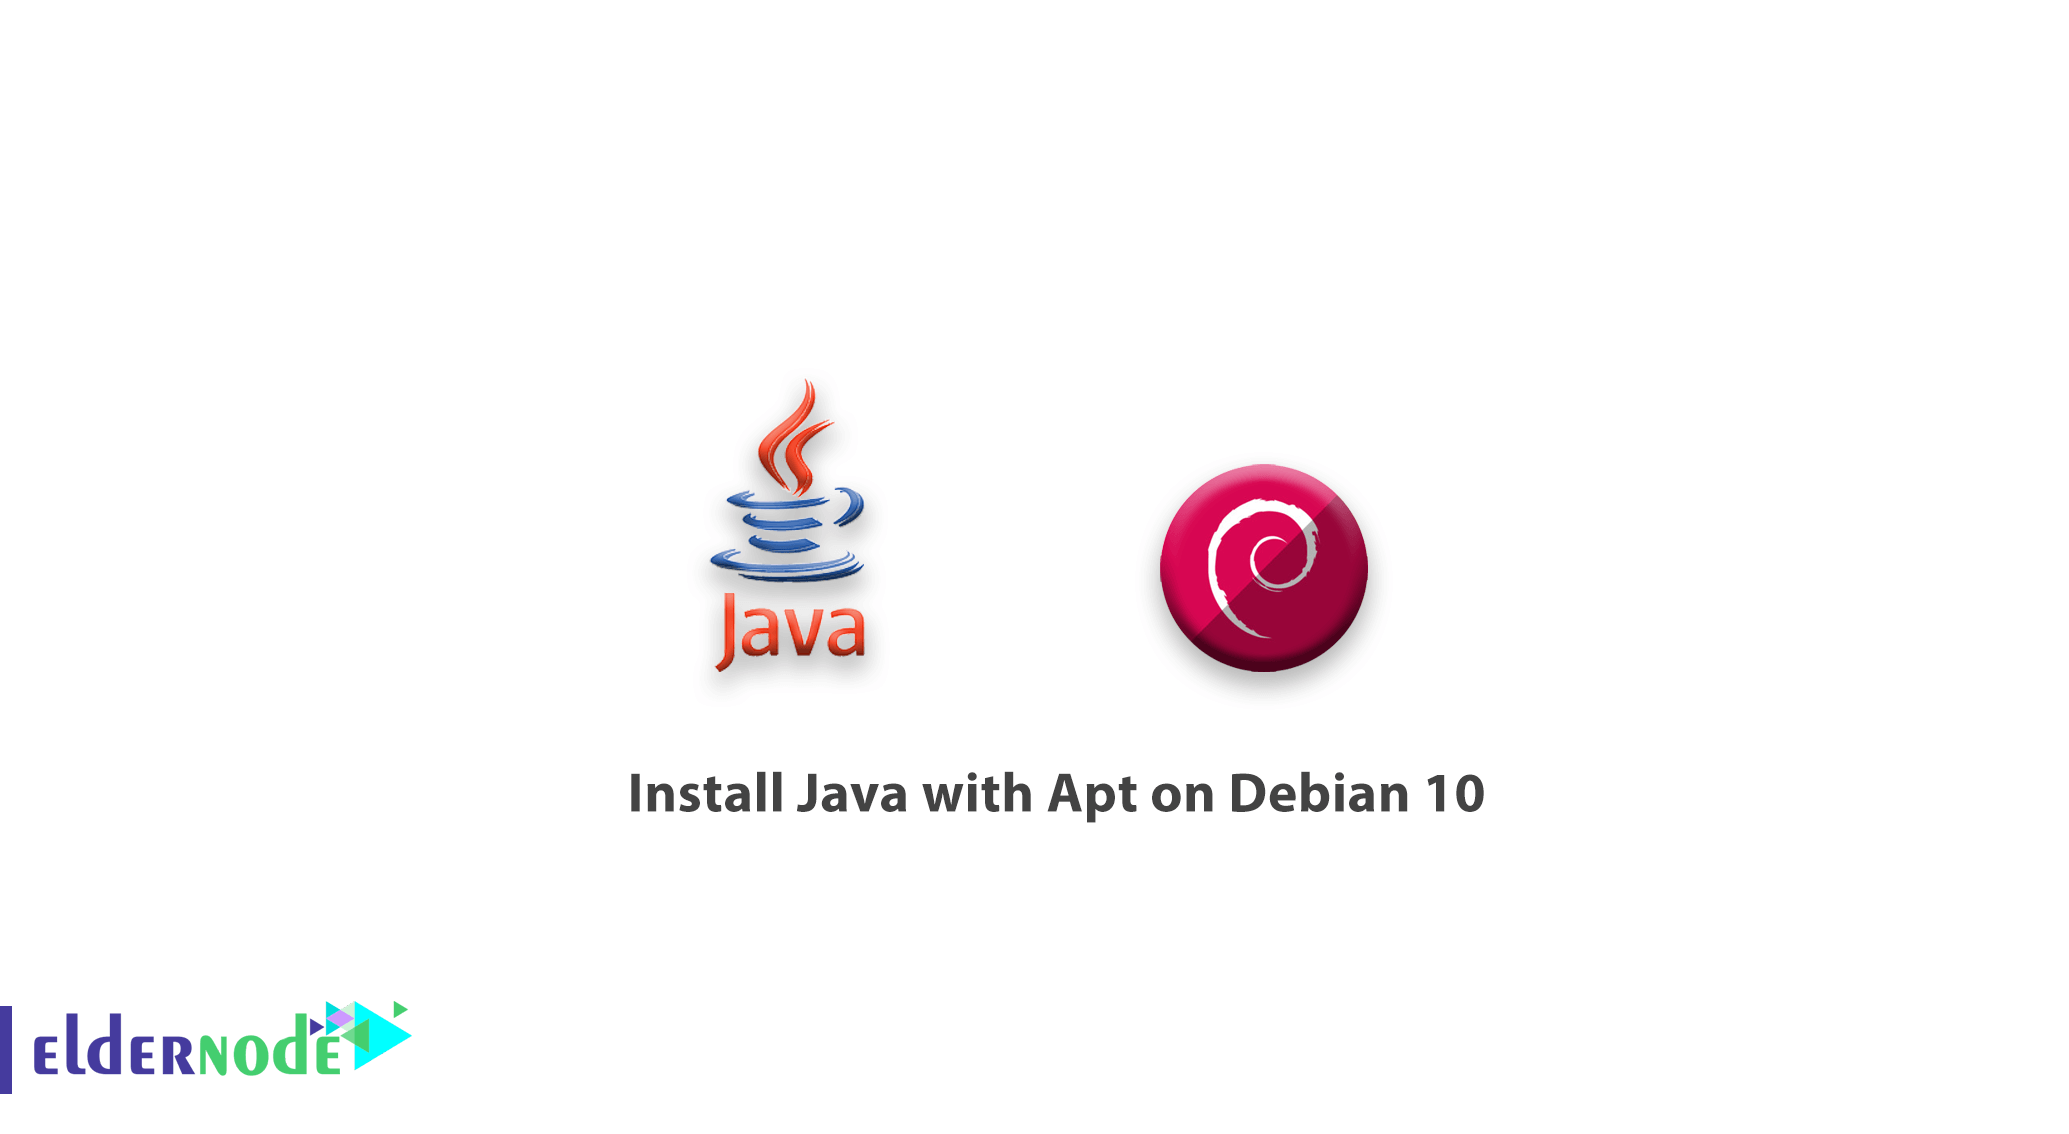 How to install Java with Apt on Debian 10